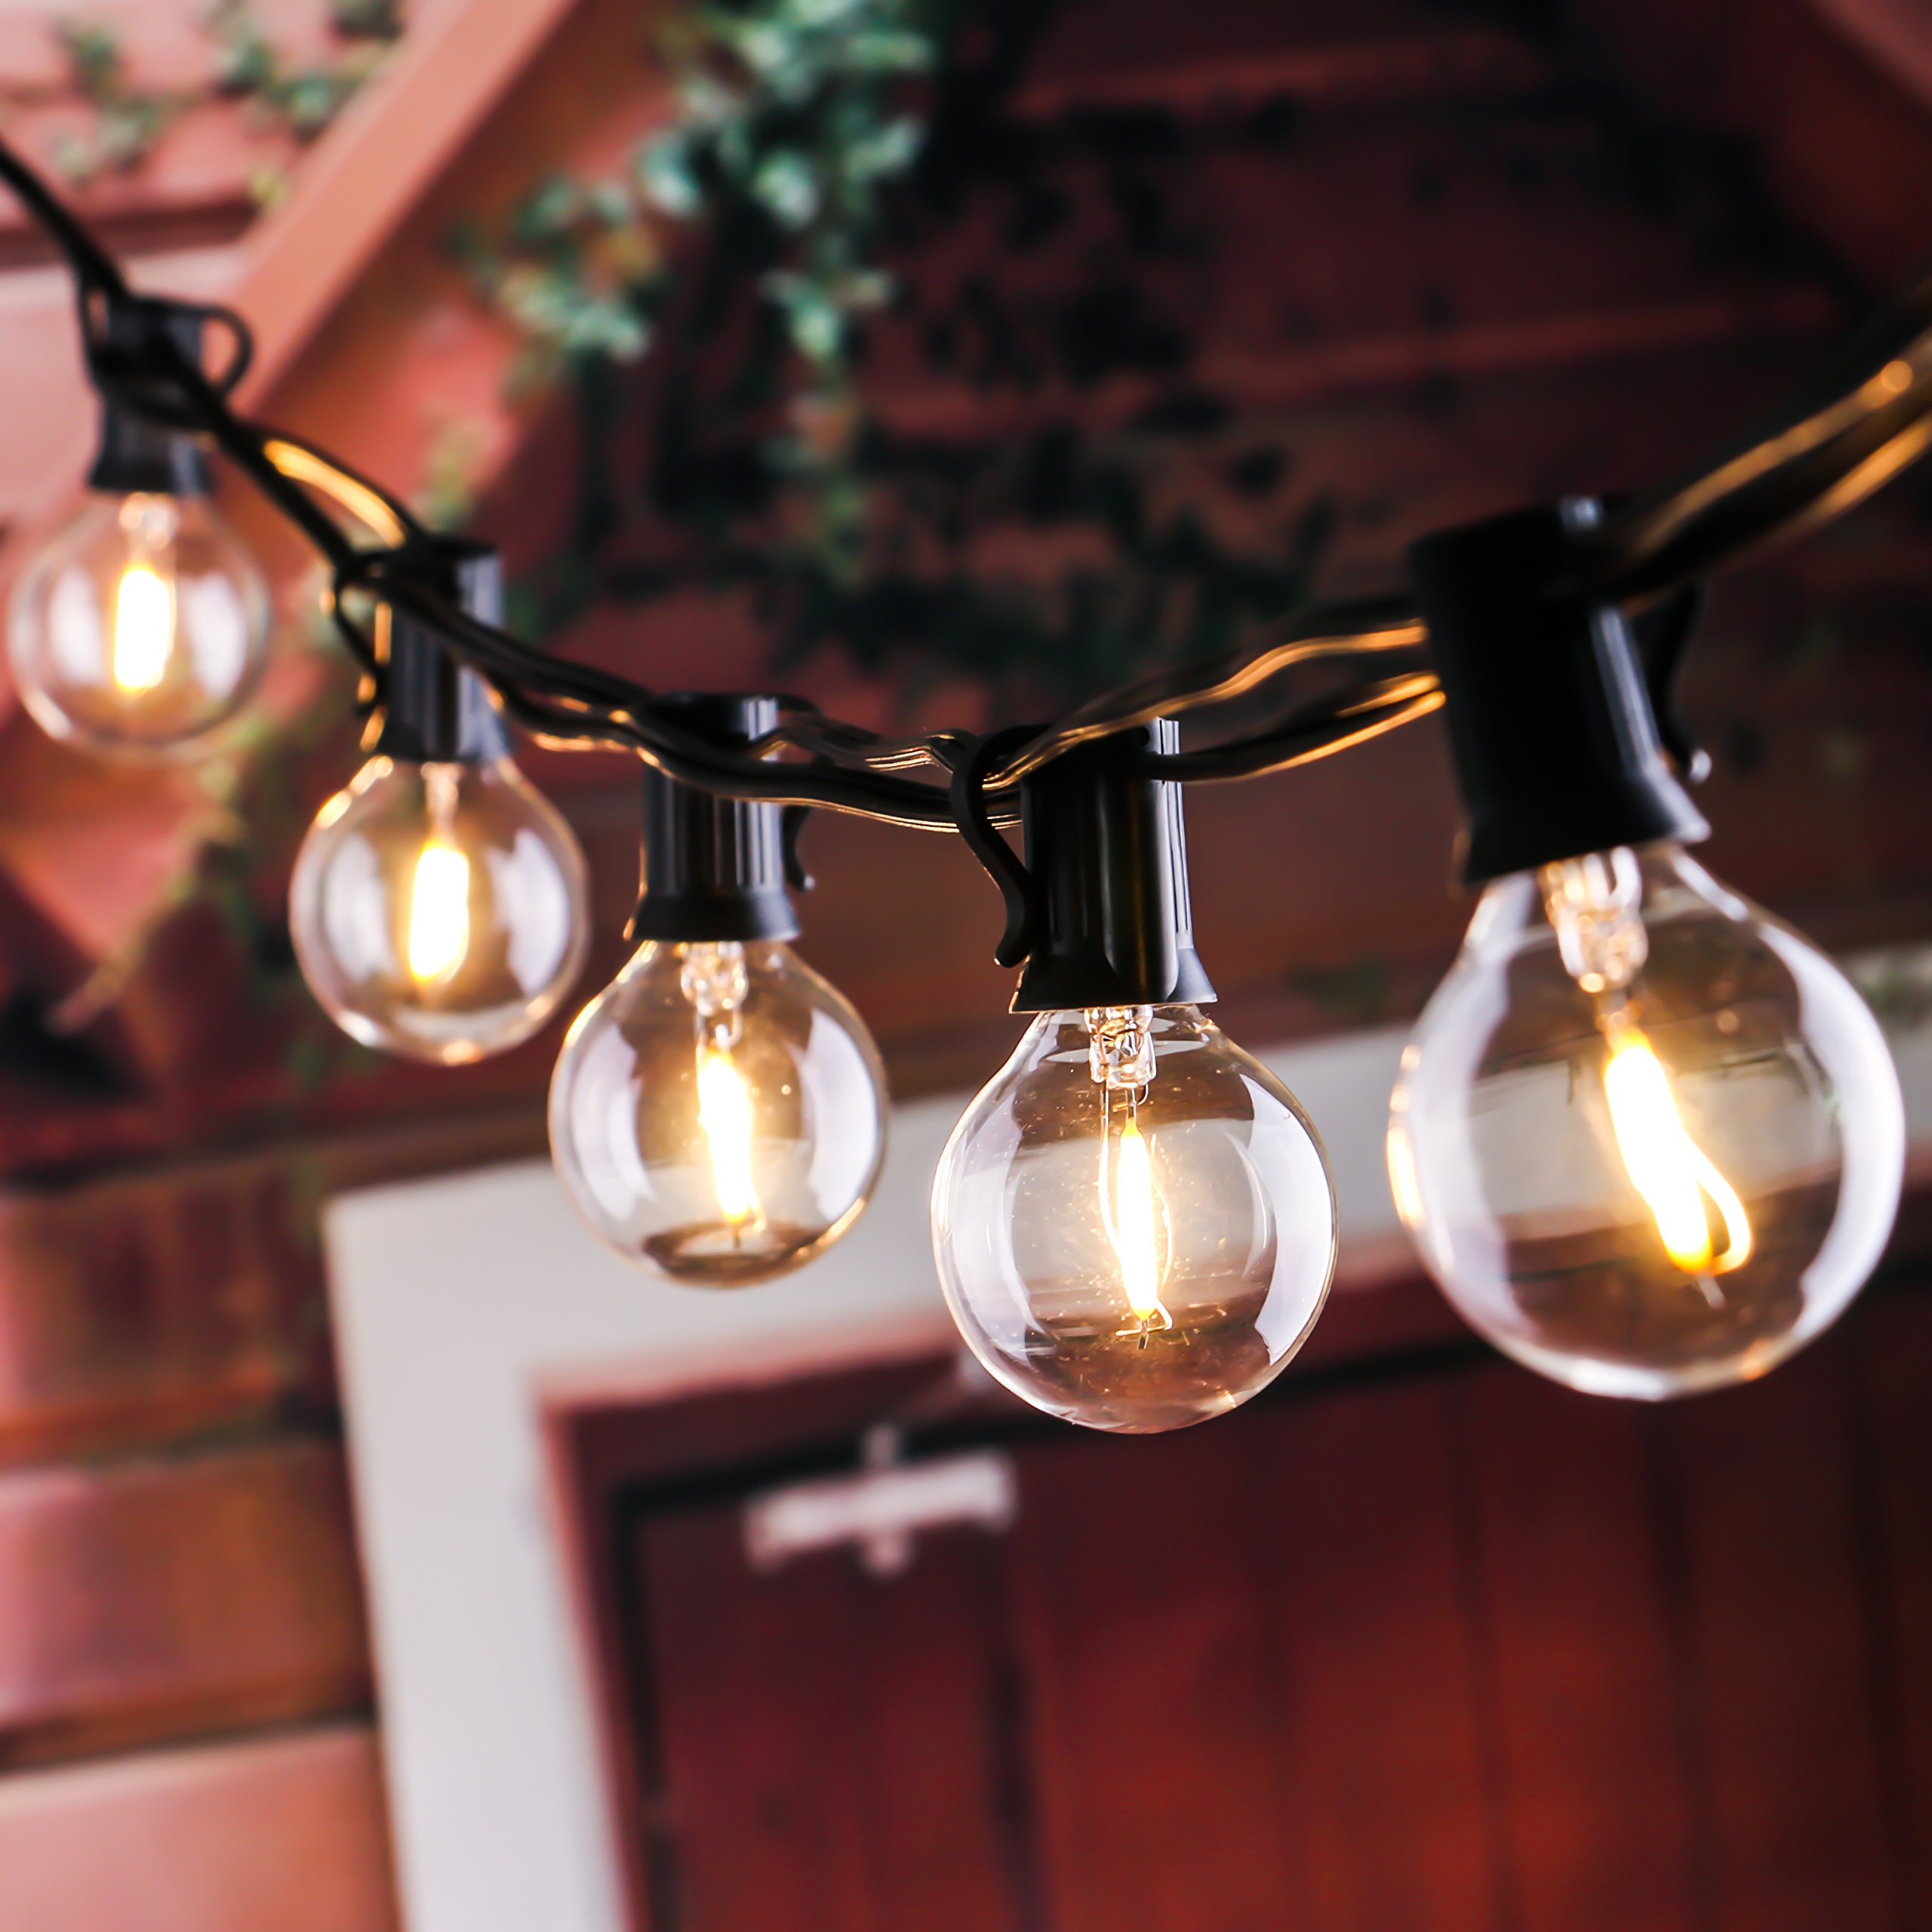 collection get hanging lighting the deck of light in string lights patio rhdecoregrupocom with your popular shape rhpinterestcom images